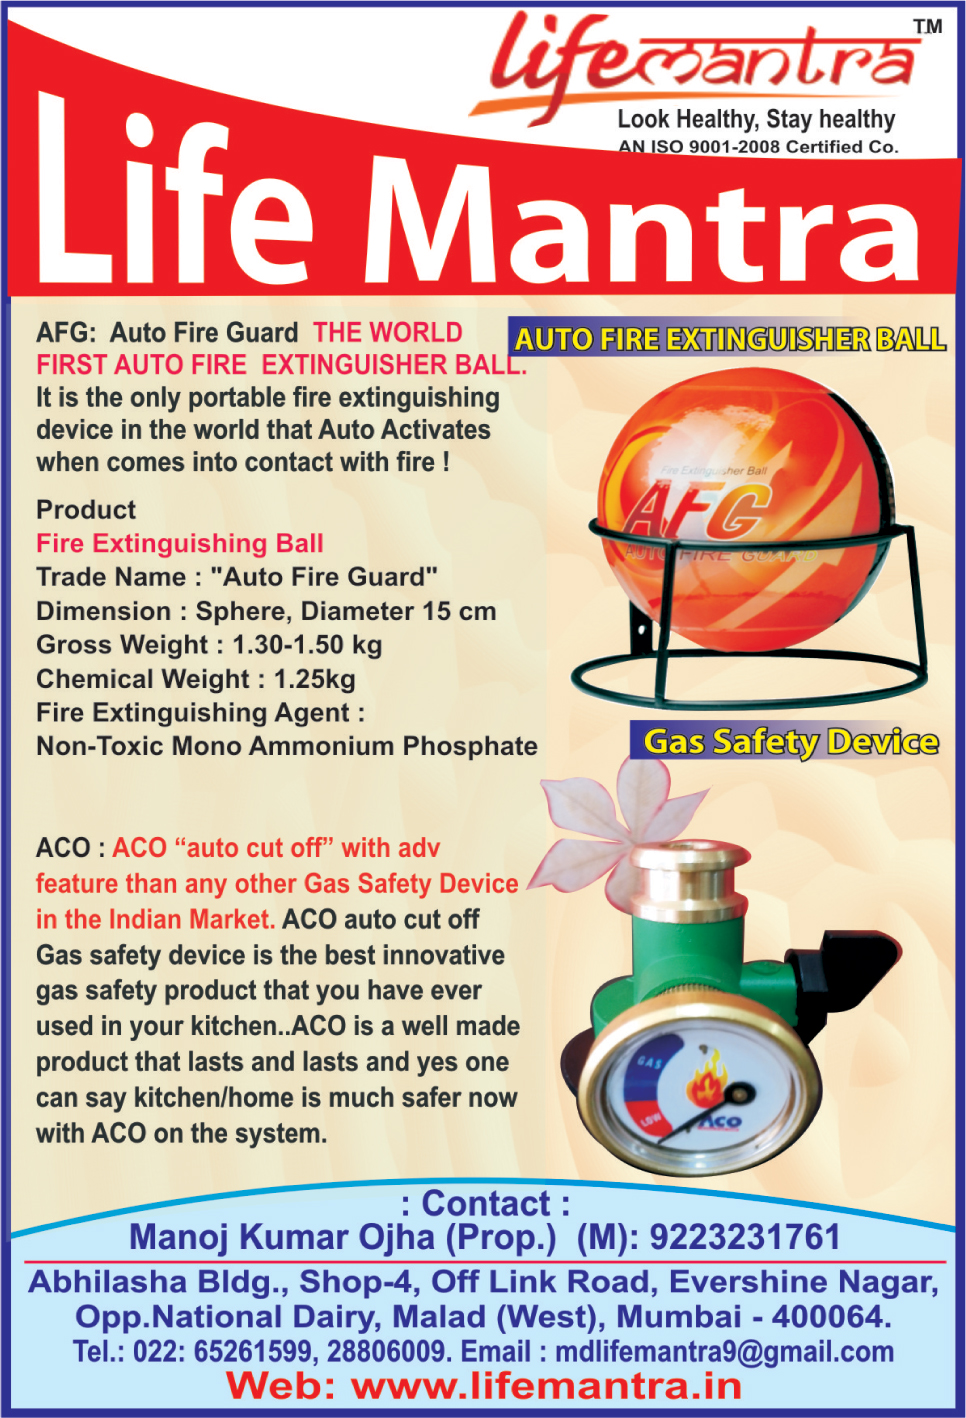 Fire Safety Products, Auto Fire Extinguisher Ball, Gas Safety Products, Gas Safety Device